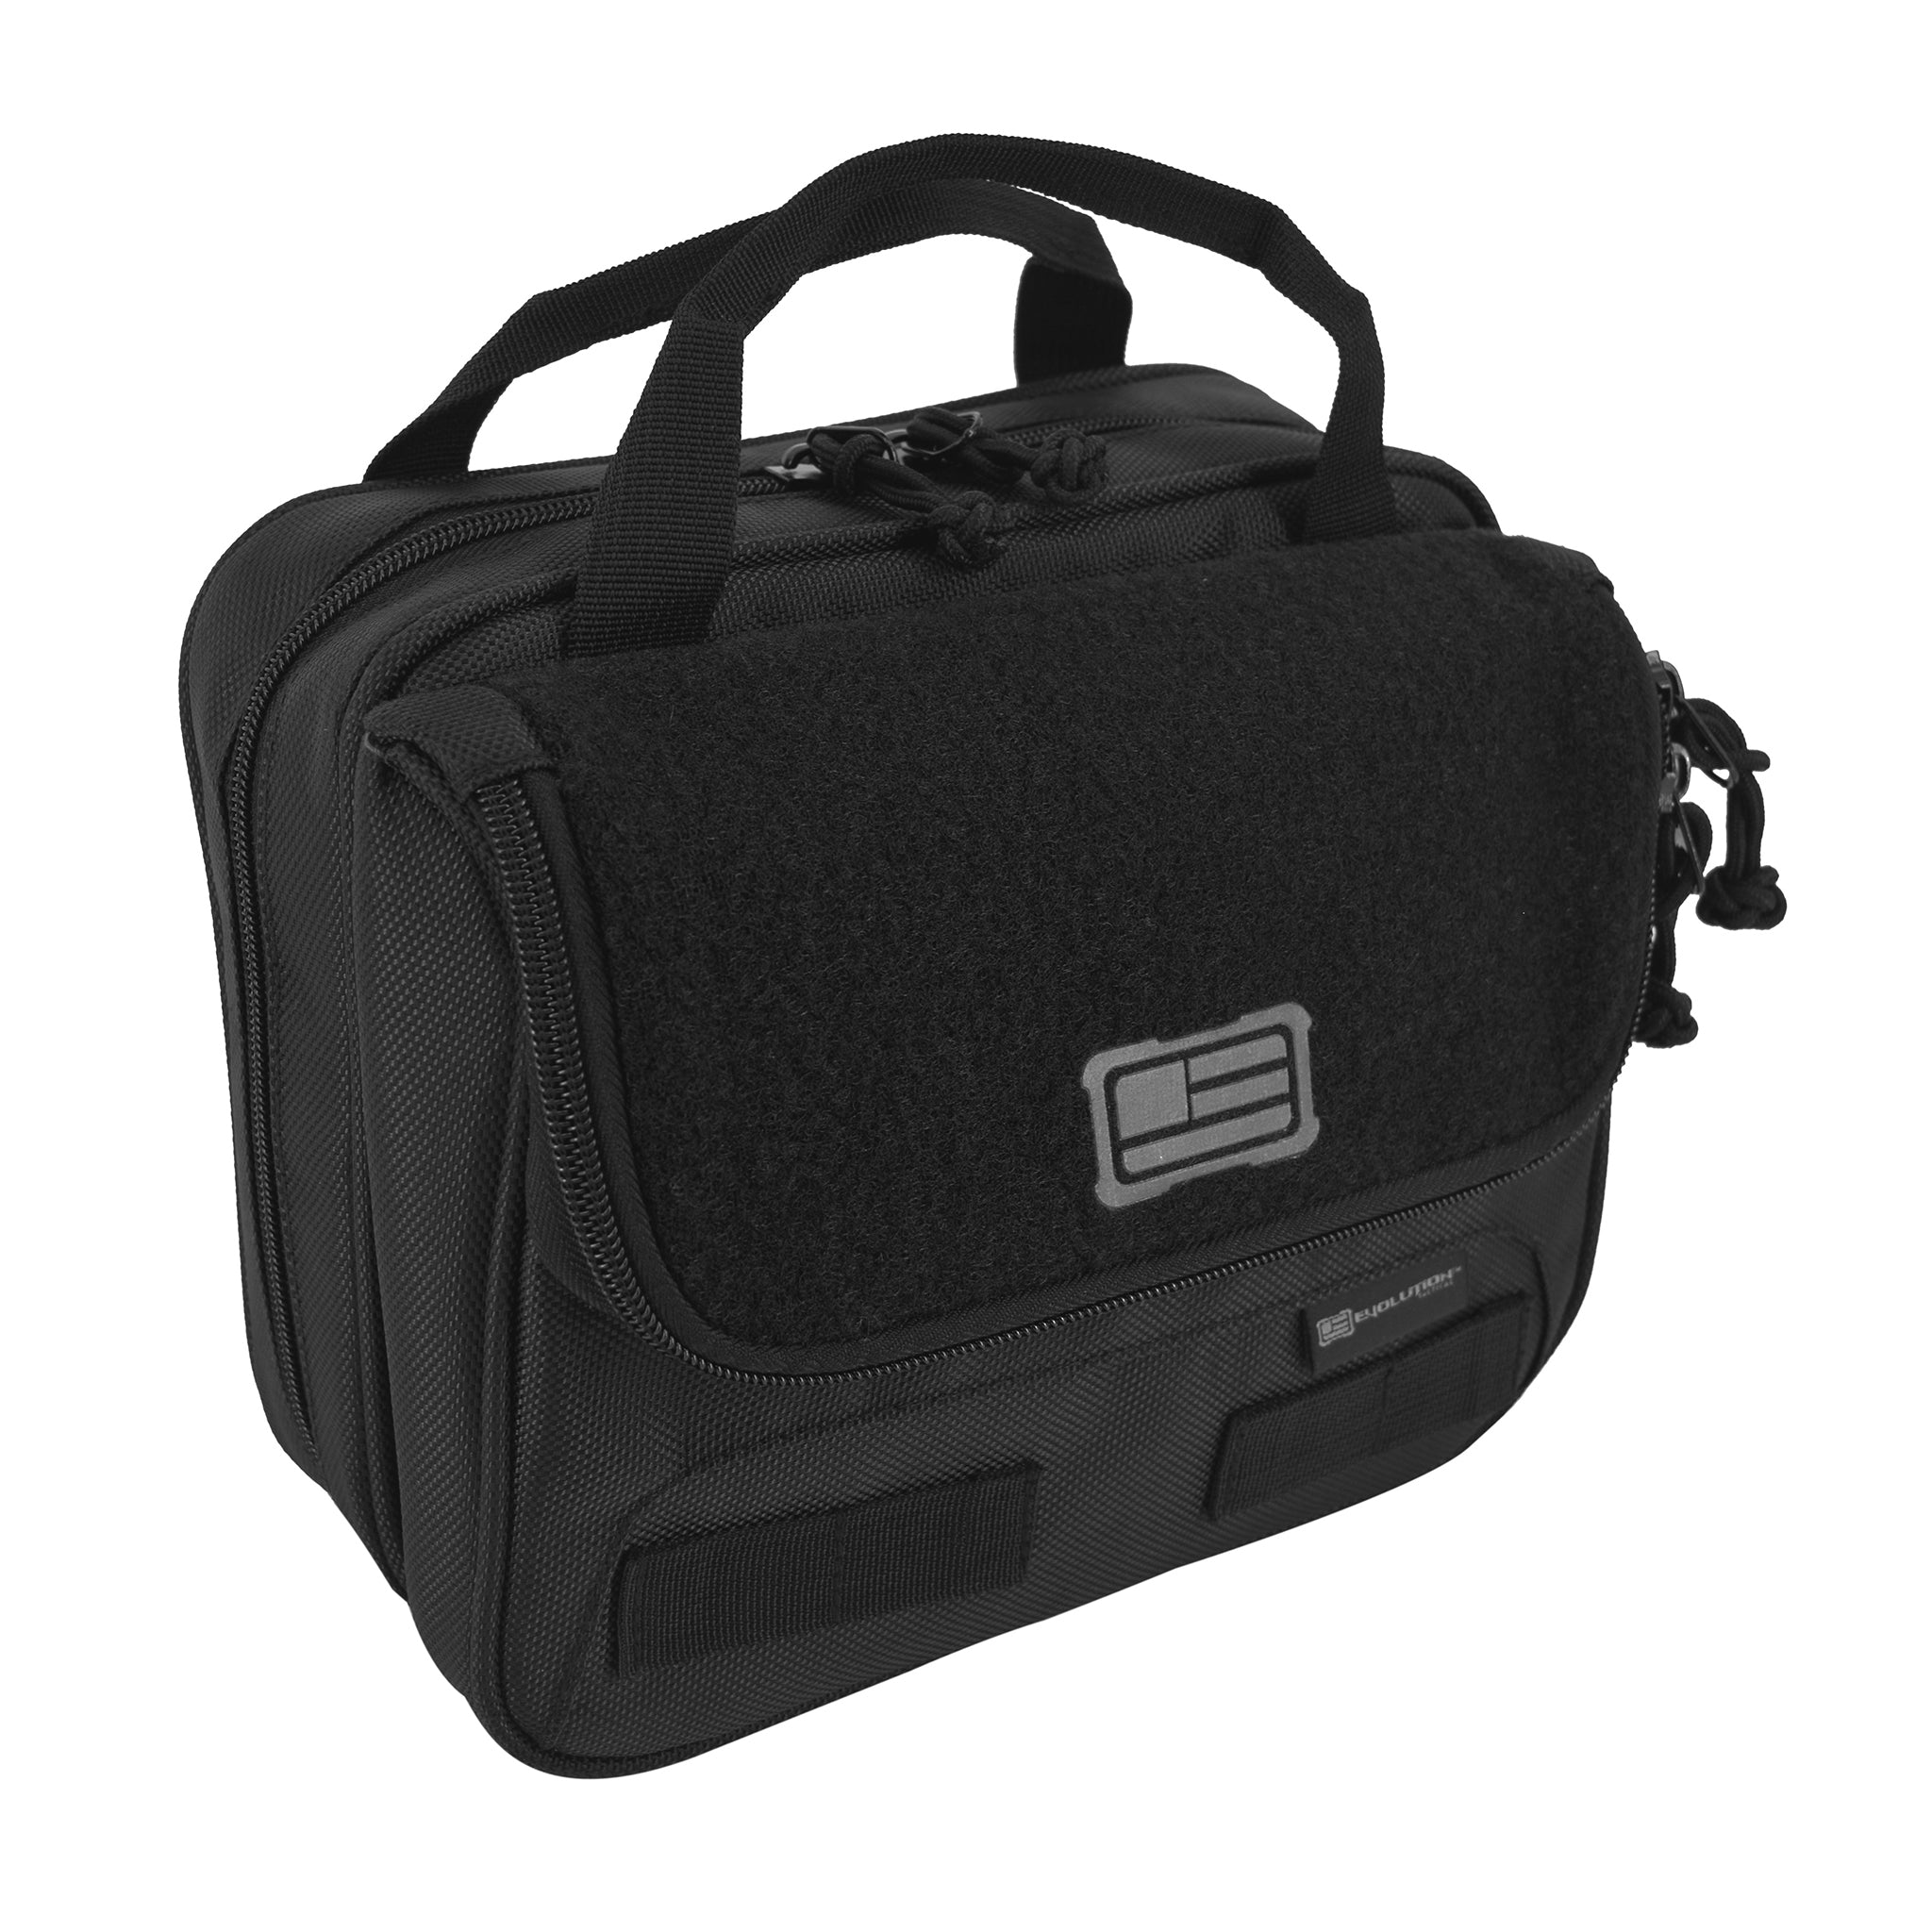 Tactical Double Pistol Case - 1680D Tactical Series